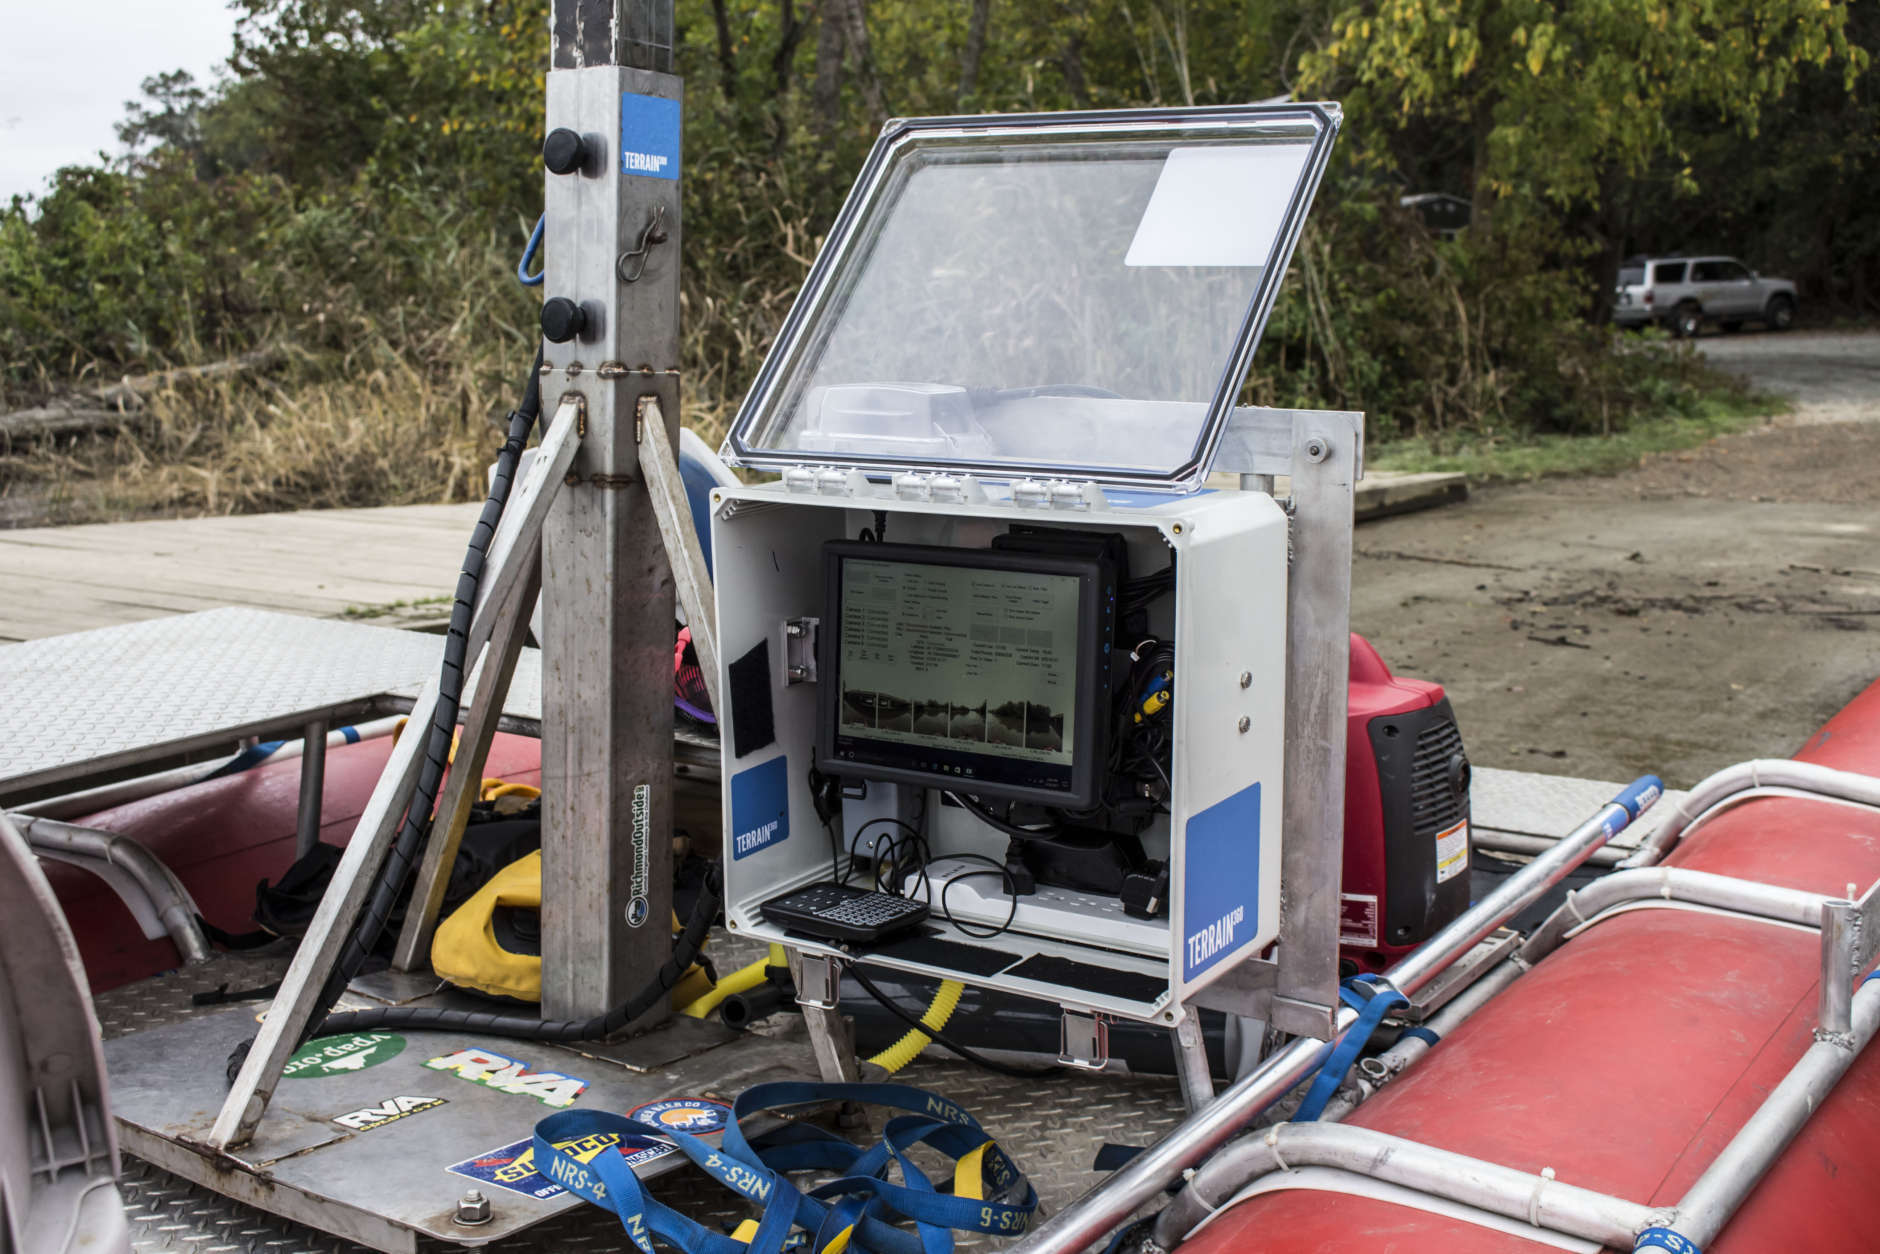 Ryan Abrahamsen designed a computer that coordinates GPS and synchronizes six Canon cameras to shoot 360 photos every 40 feet on the water. Terrain 360 was mapping the Patuxent River, launching from Upper Marlboro, Maryland, in partnership with the Chesapeake Conservancy, to create virtual river tours Tuesday Sept. 26, 2017. (Alex Mann/Capital News Service)